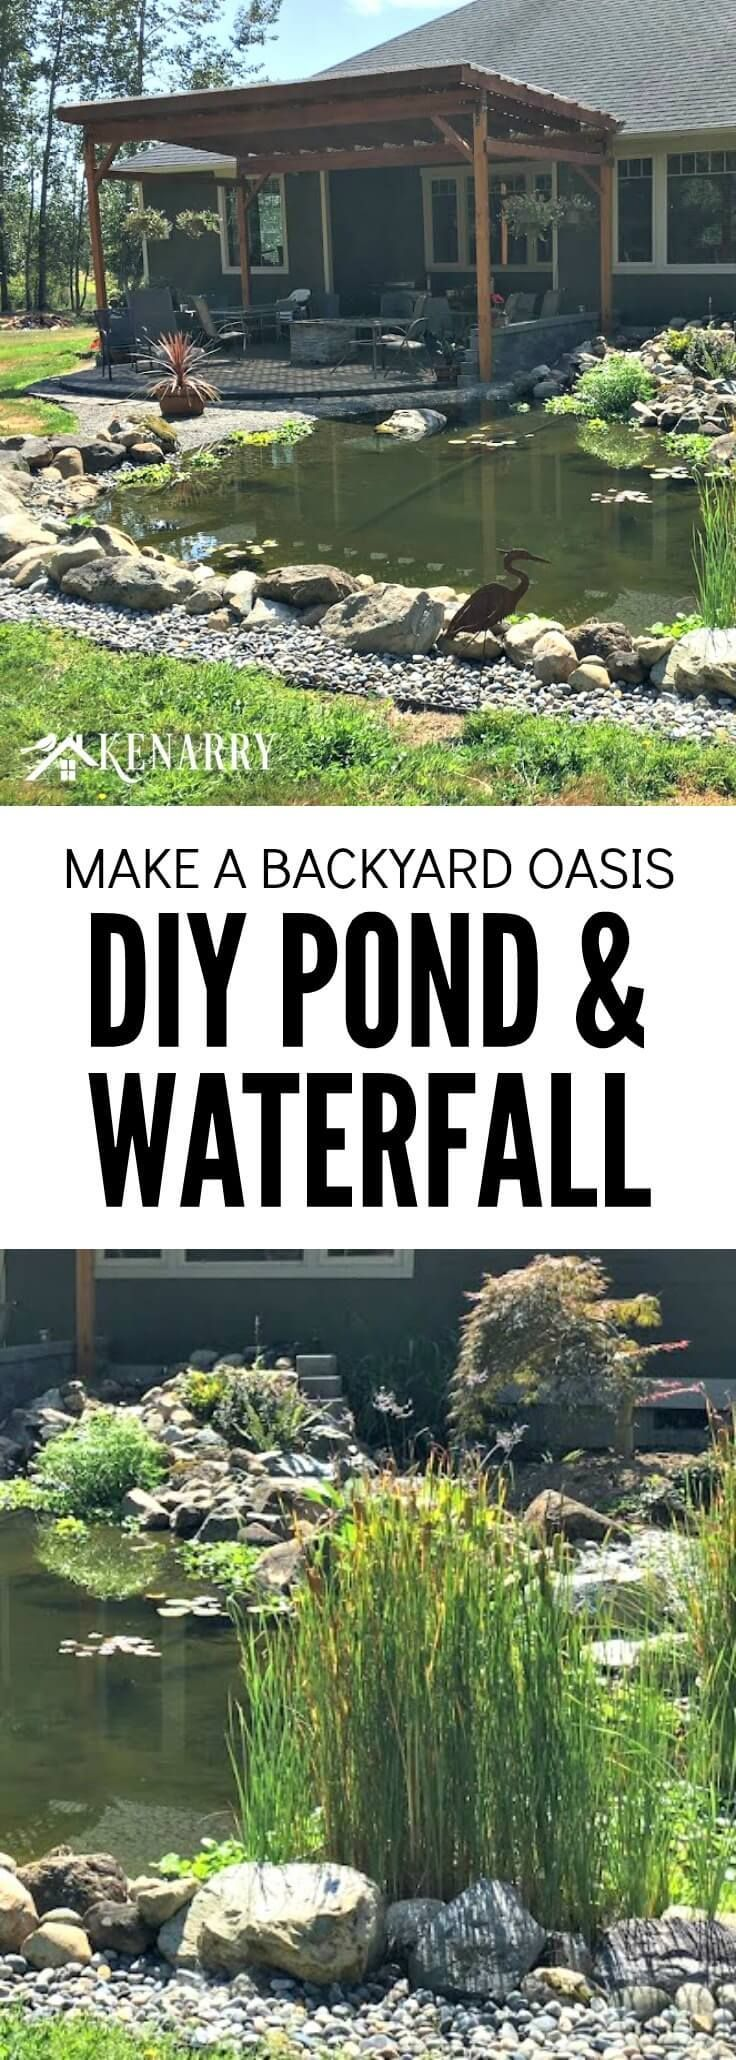 Best 25+ Diy pond ideas on Pinterest | Fish ponds, Pond ideas and ...